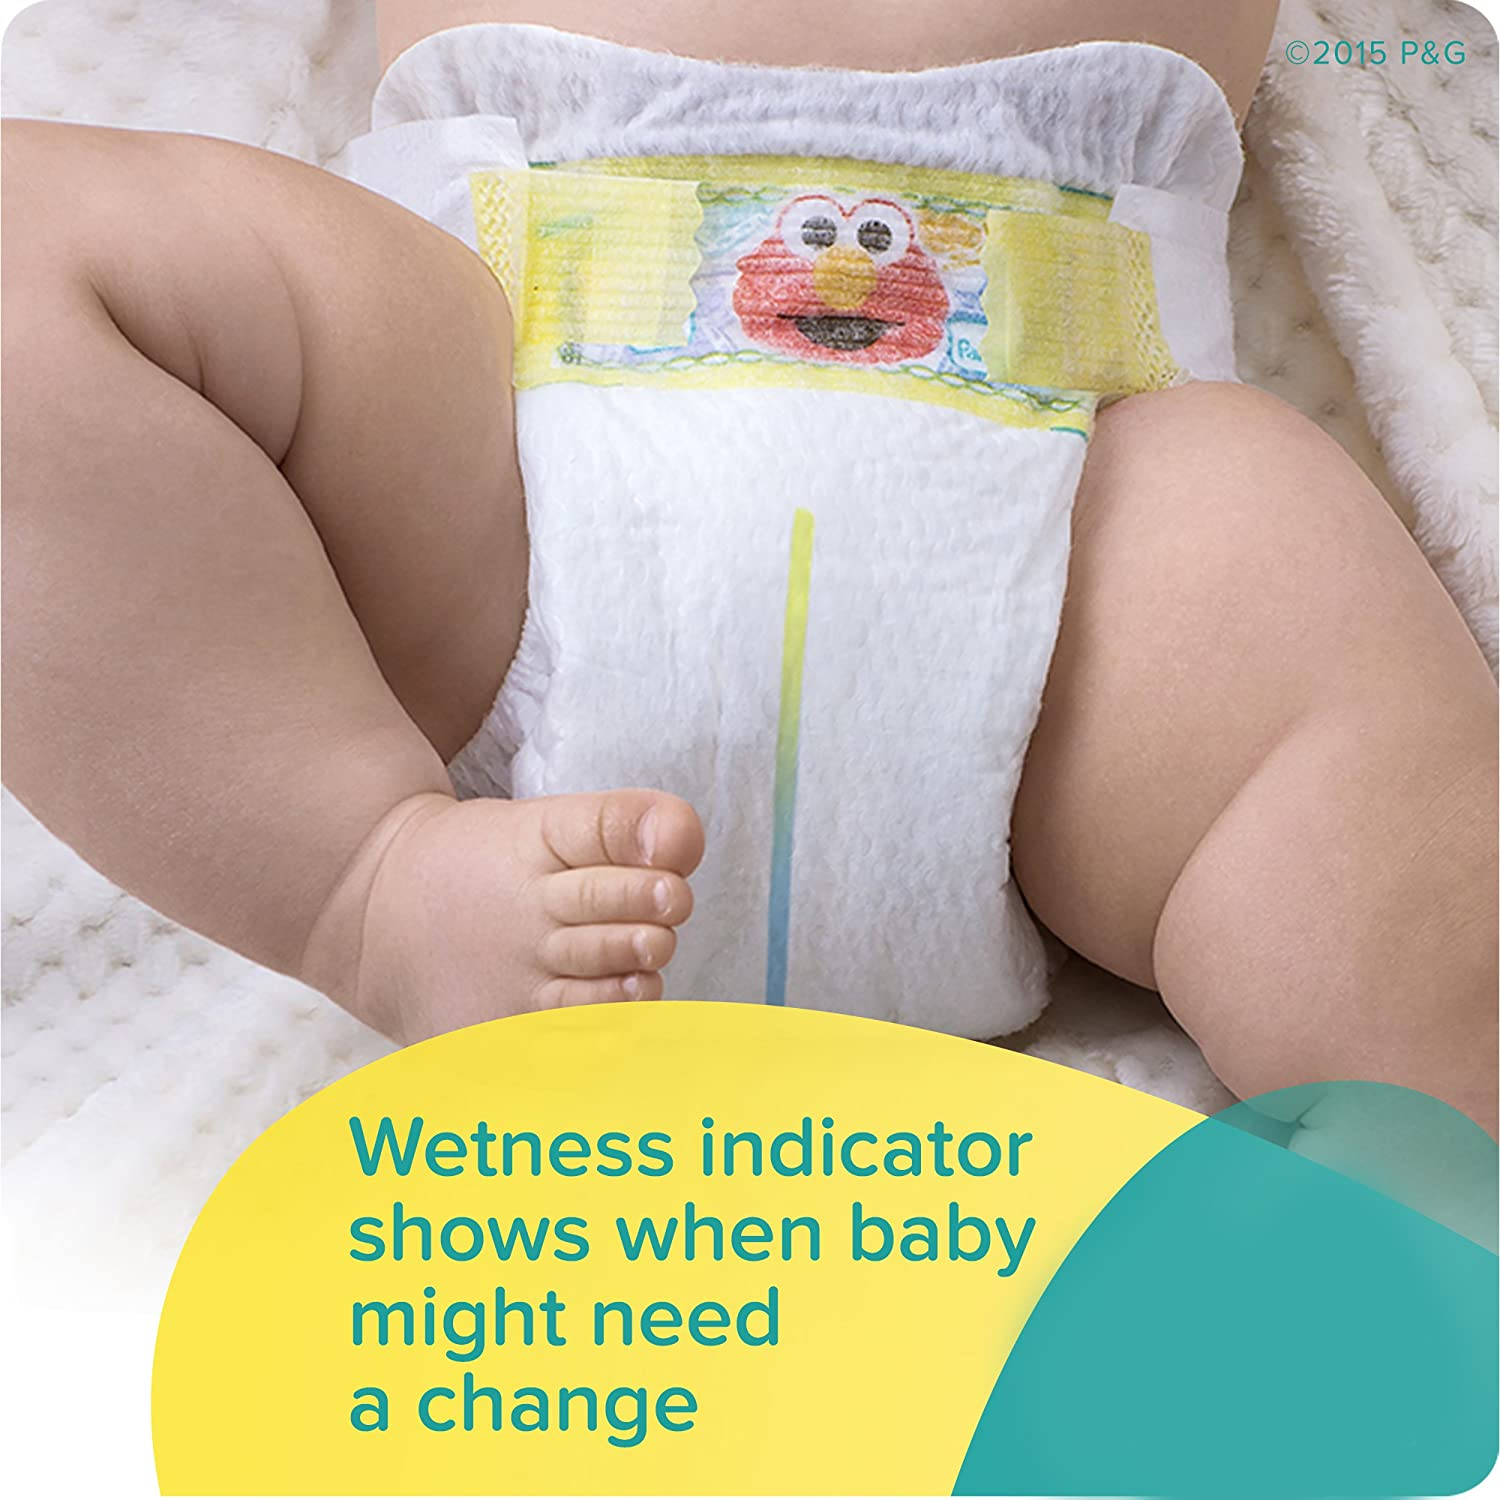 Amazon.com: Pampers Swaddlers Disposable Diapers Size 2, 204 Count, ONE MONTH SUPPLY: Health & Personal Care